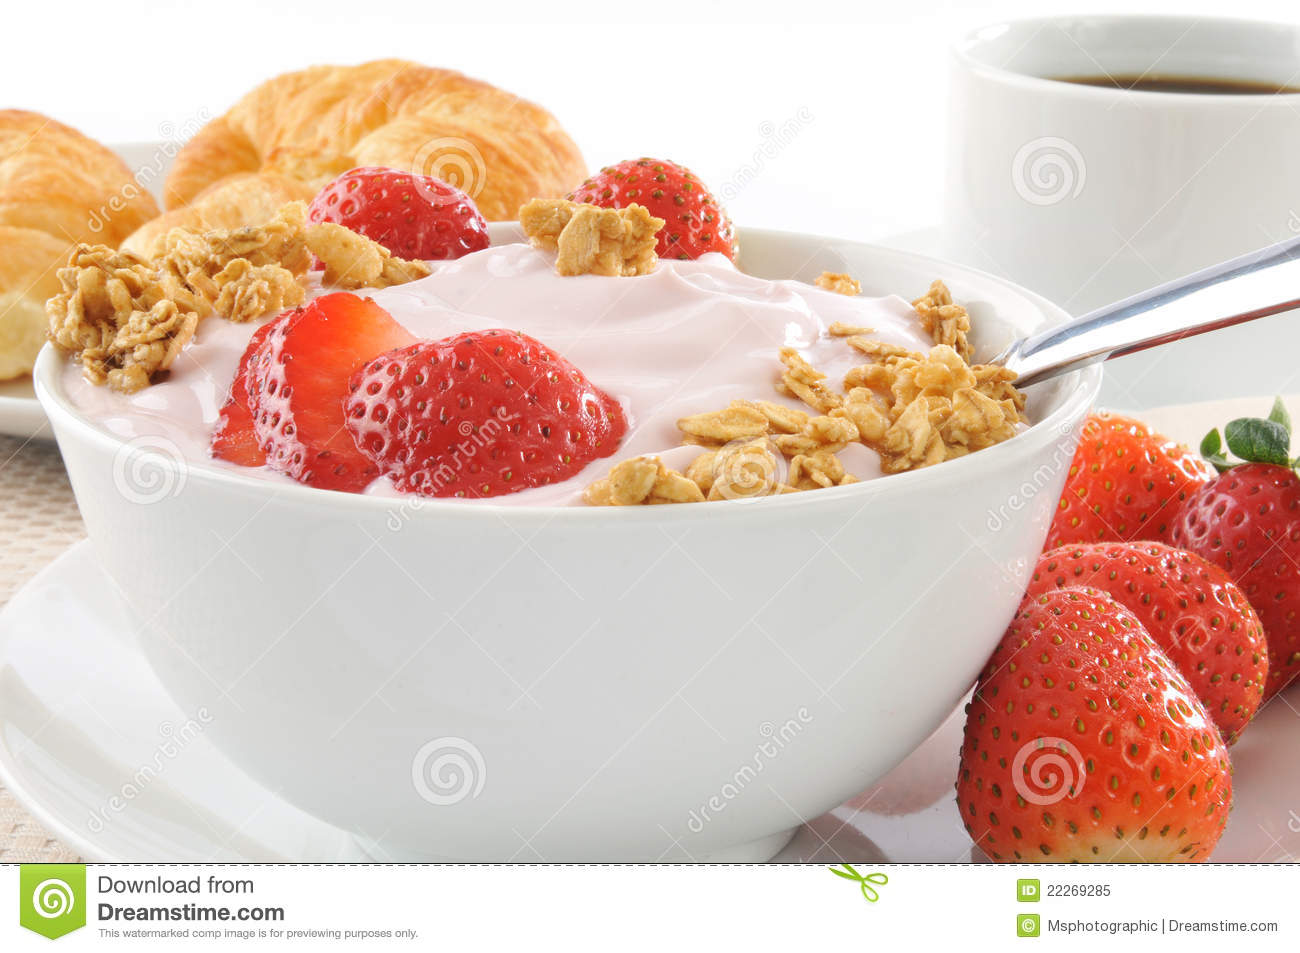 Healthy Low Fat Breakfast Royalty Free Stock Photo - Image ...